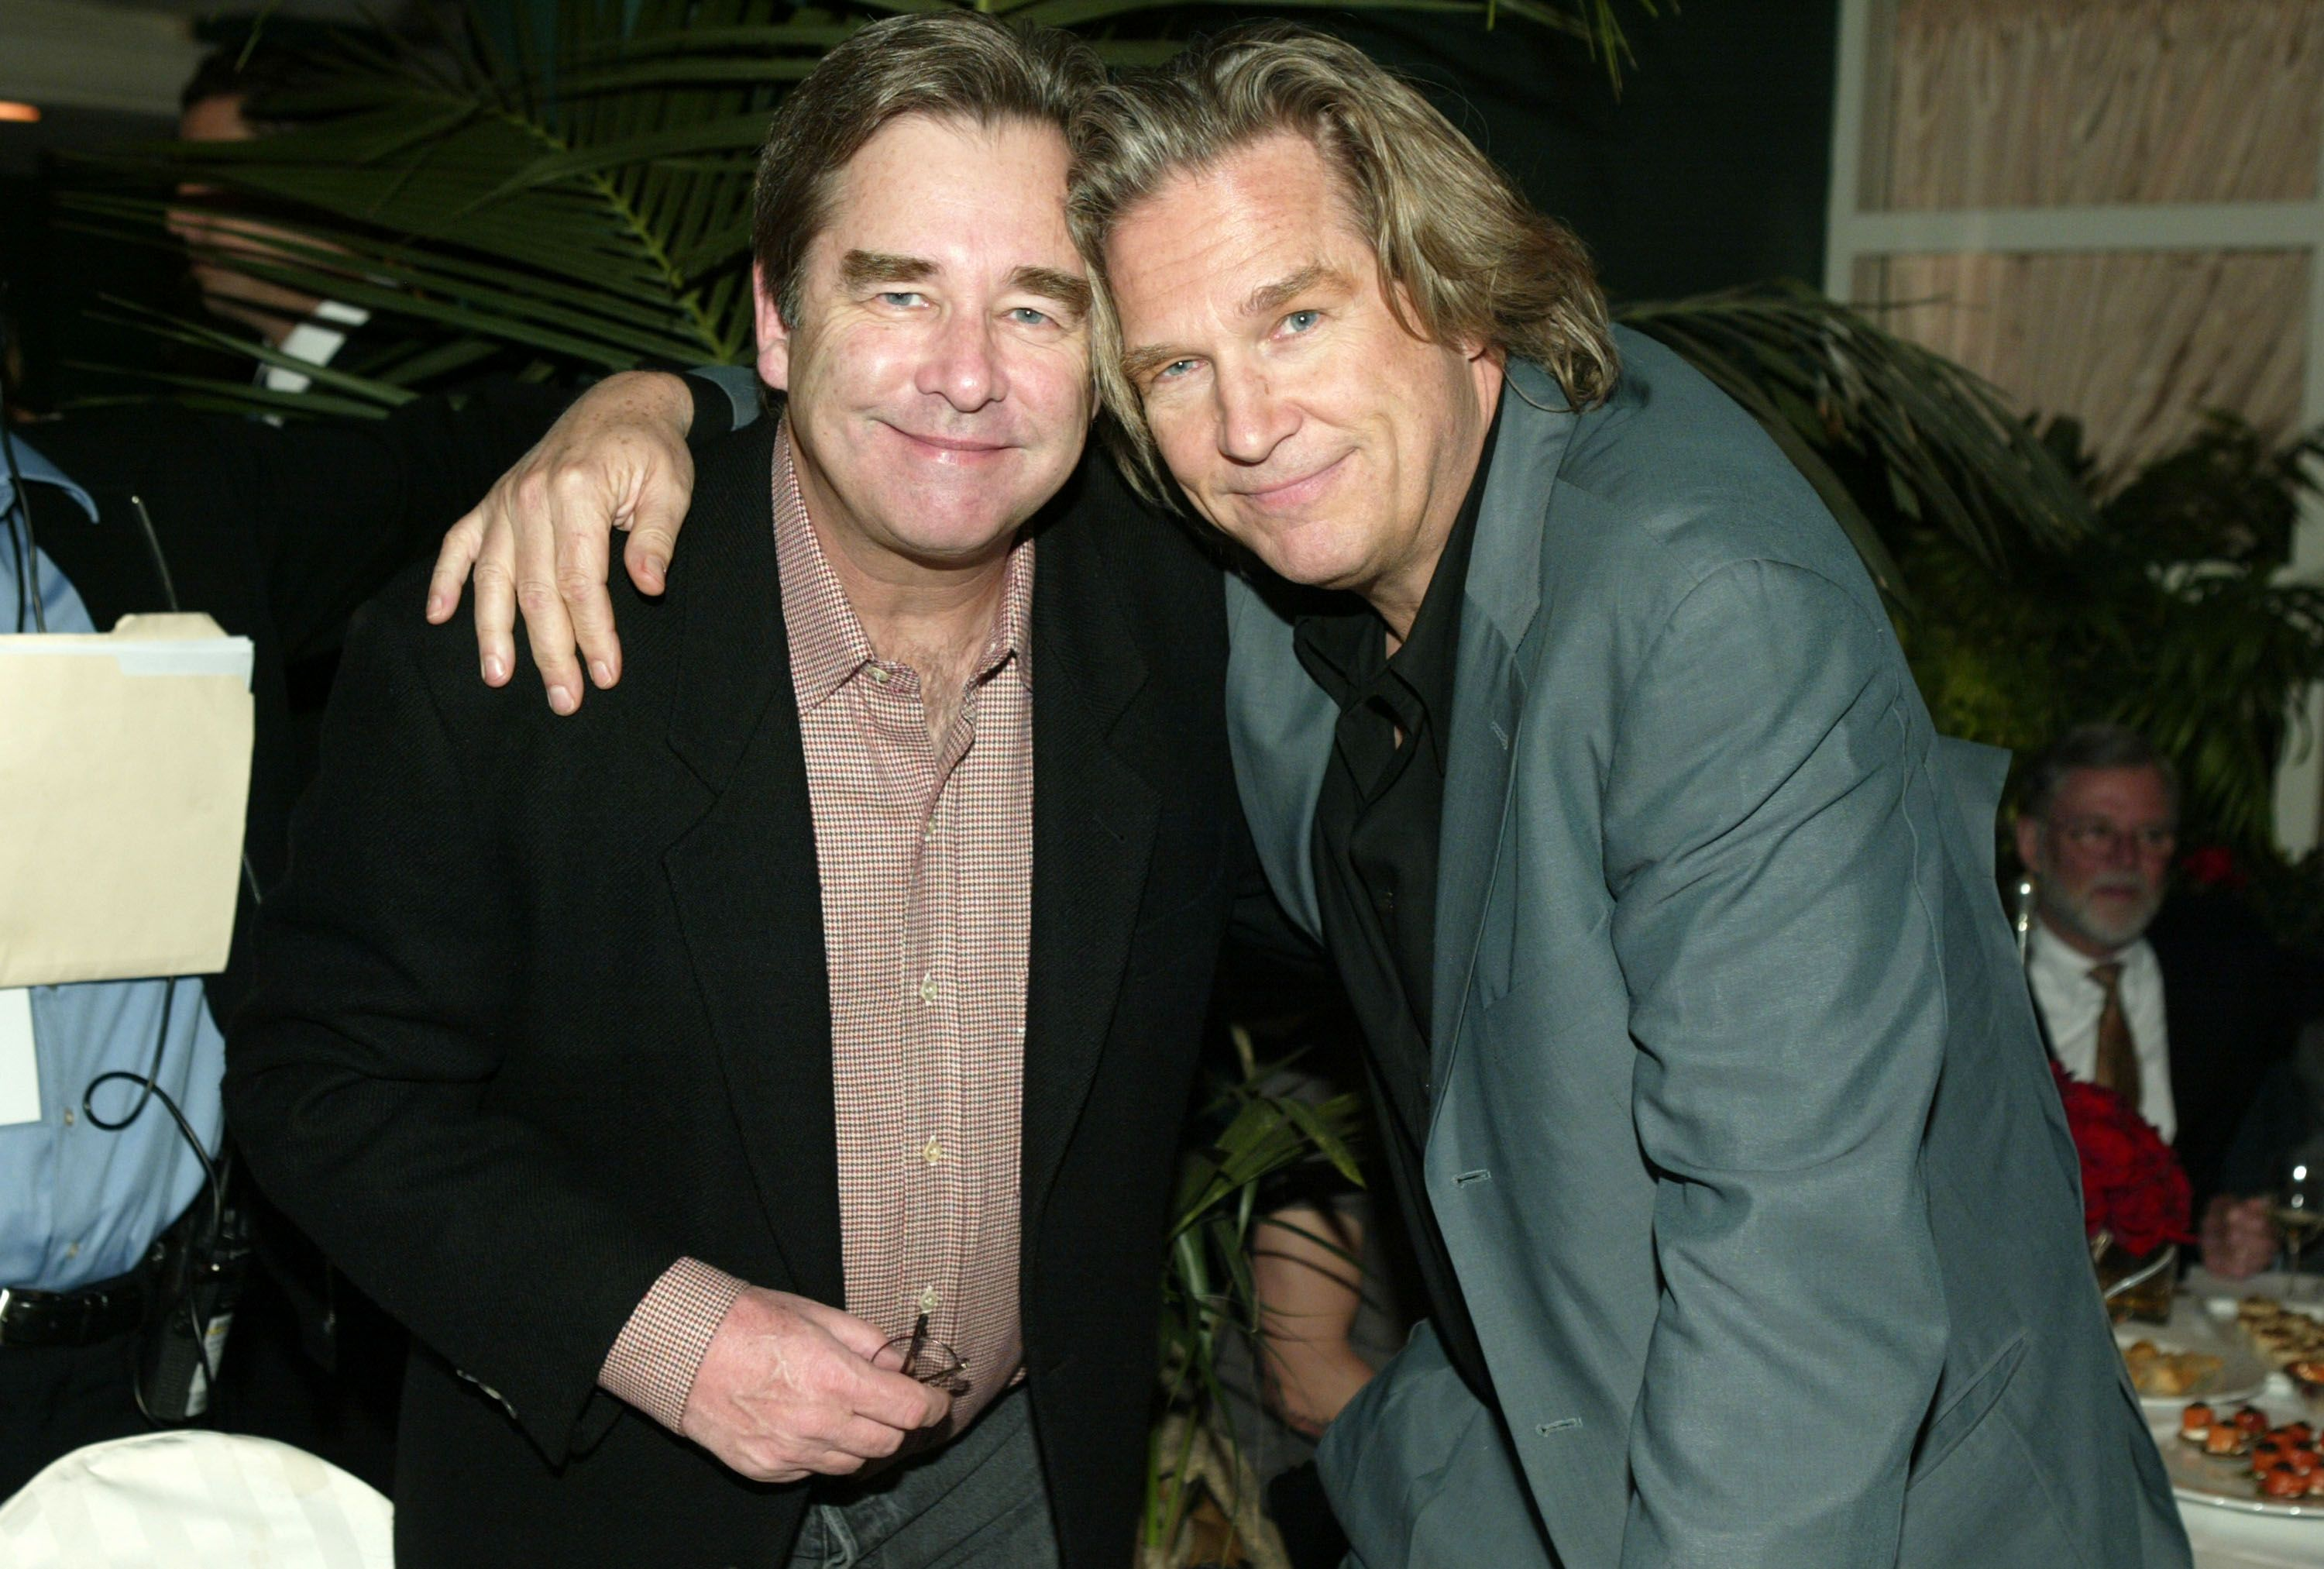 """Beau Bridges and Jeff Bridges at the """"Seabiscuit"""" DVD Launch -Party in Beverly Hills 